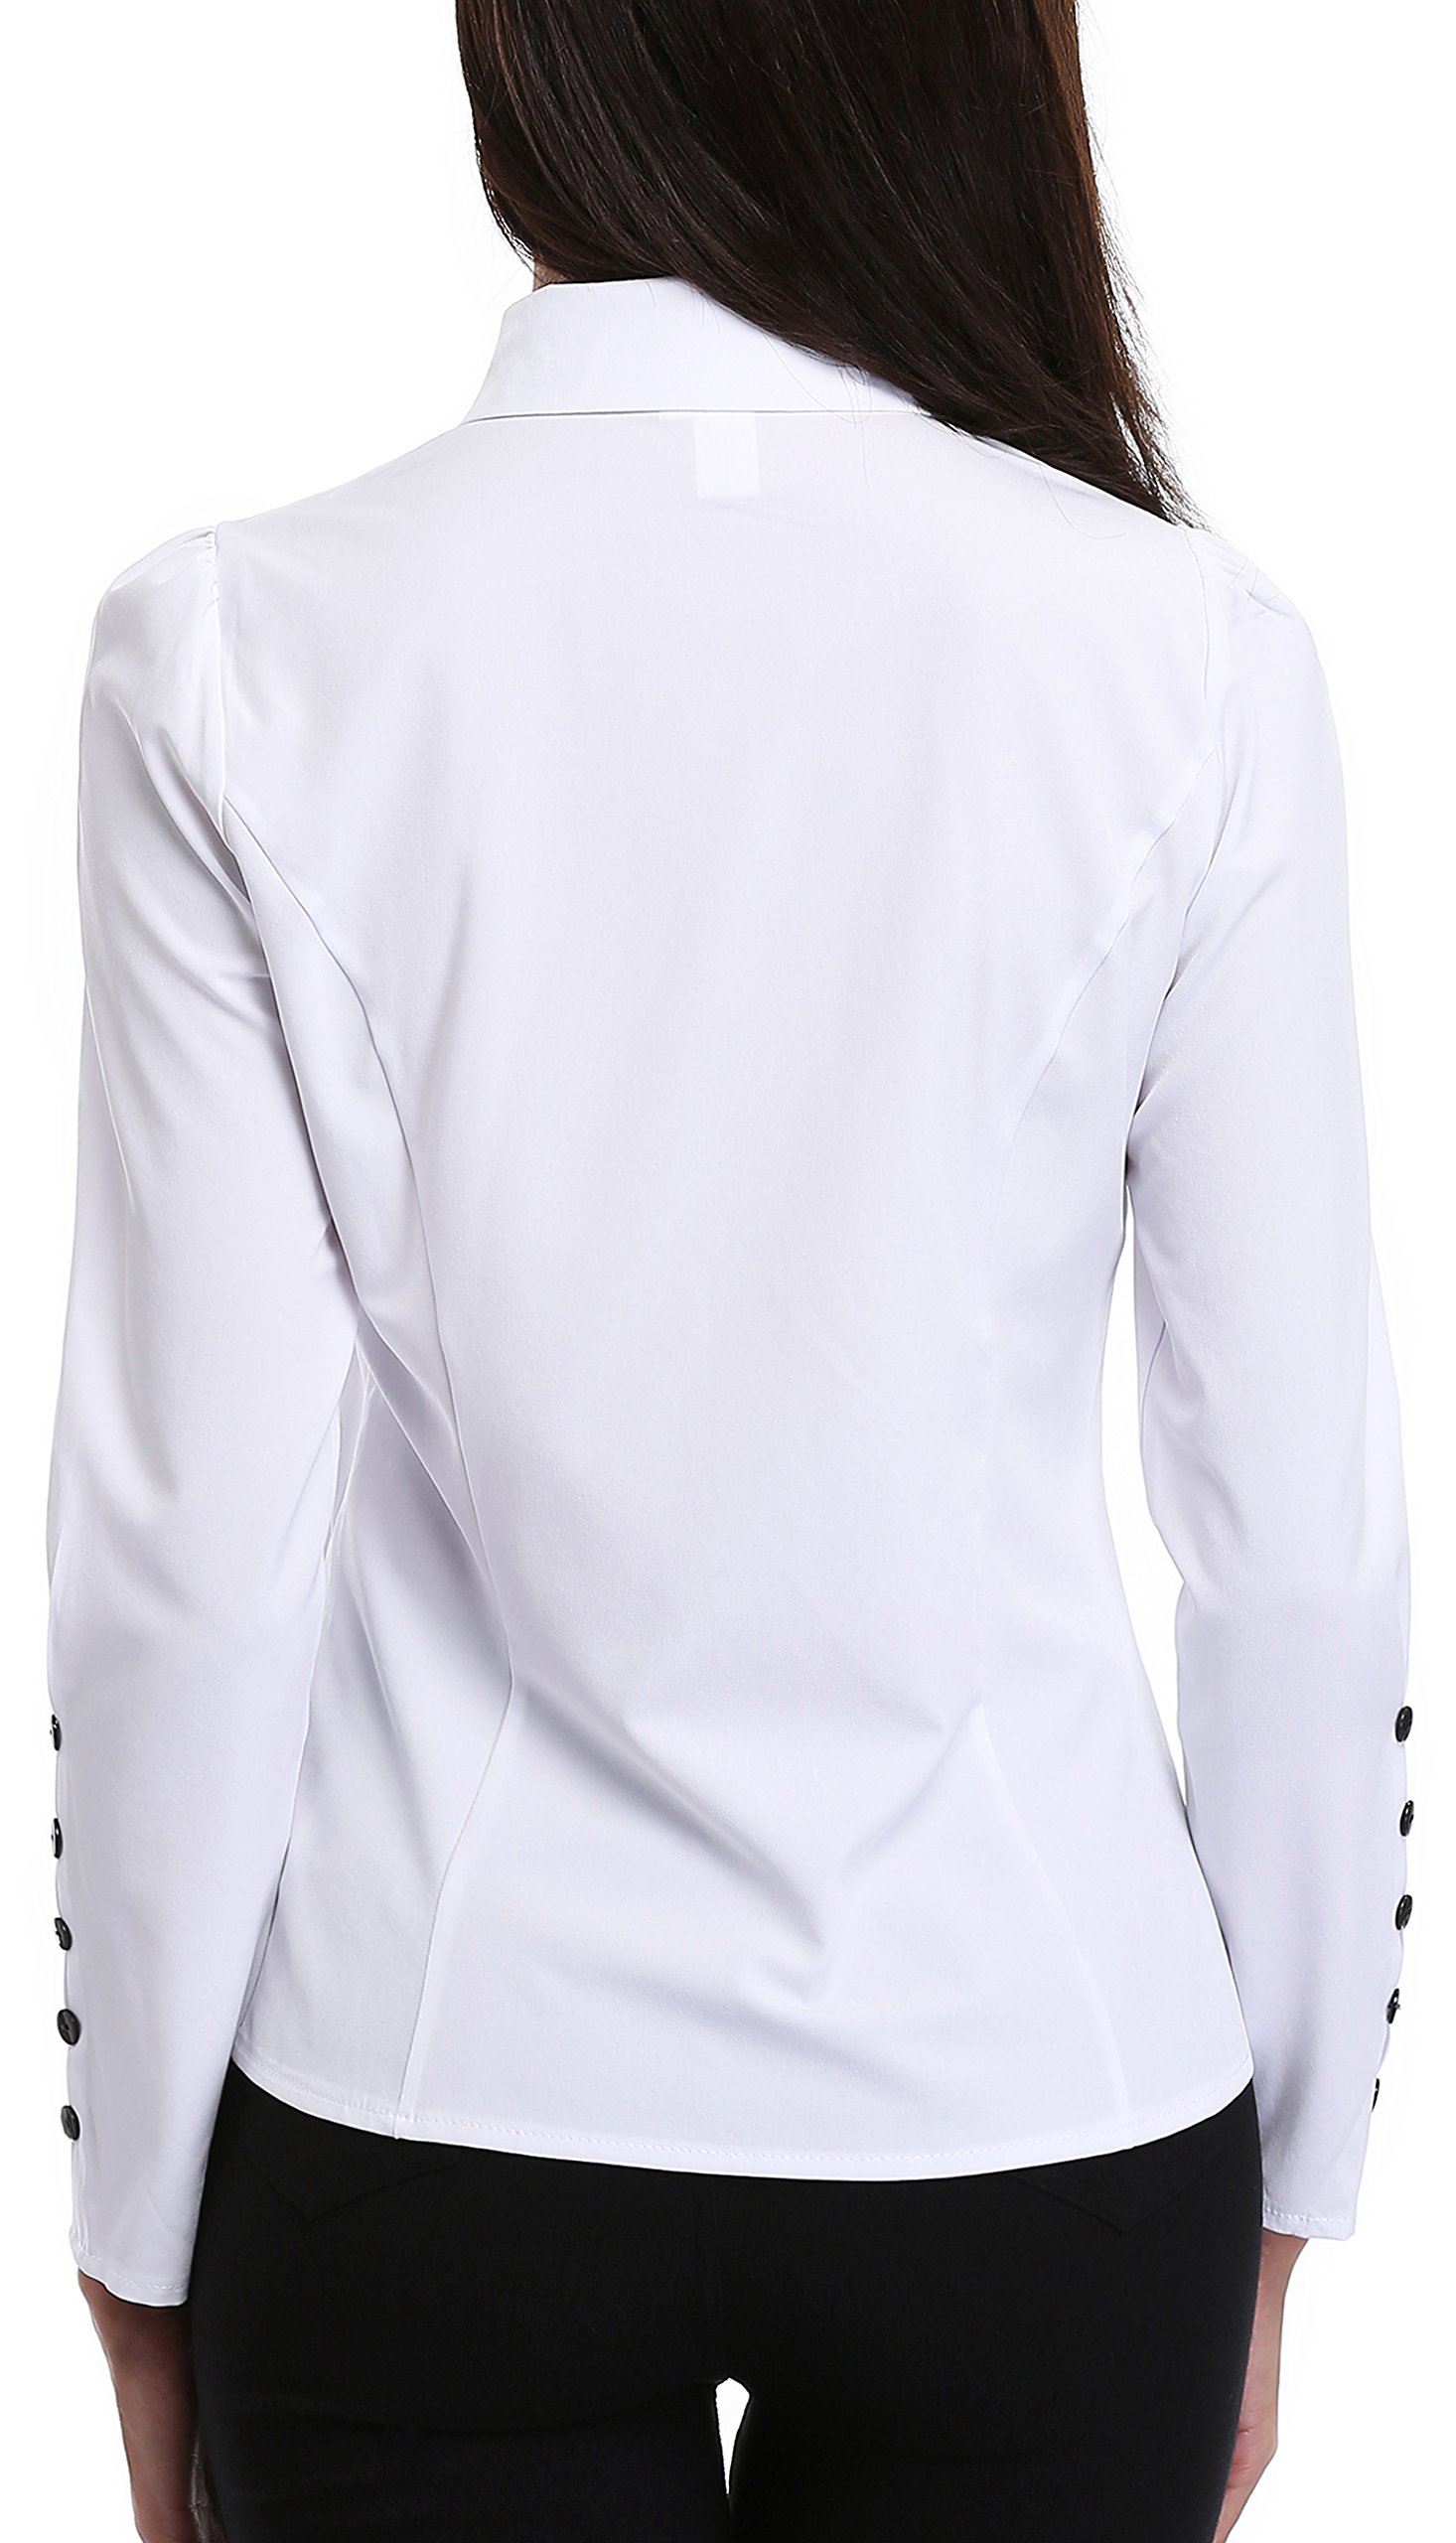 MISS MOLY Women's White Button Down Shirt V Neck Collar Puff Sleeve Office M by MISS MOLY (Image #6)